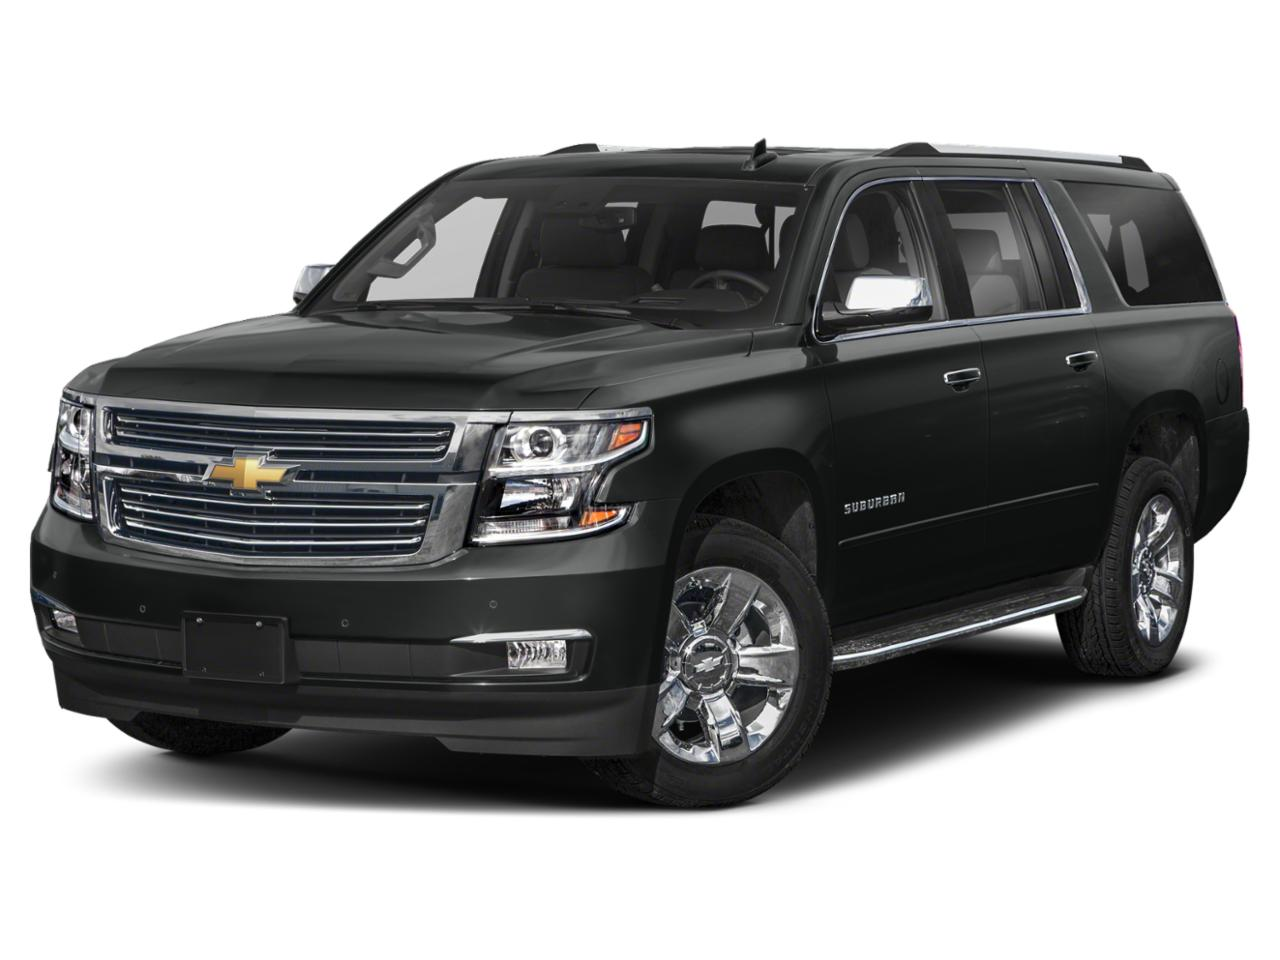 Shadow Gray Metallic 2020 Chevrolet Suburban PREMIER SUV Lexington NC